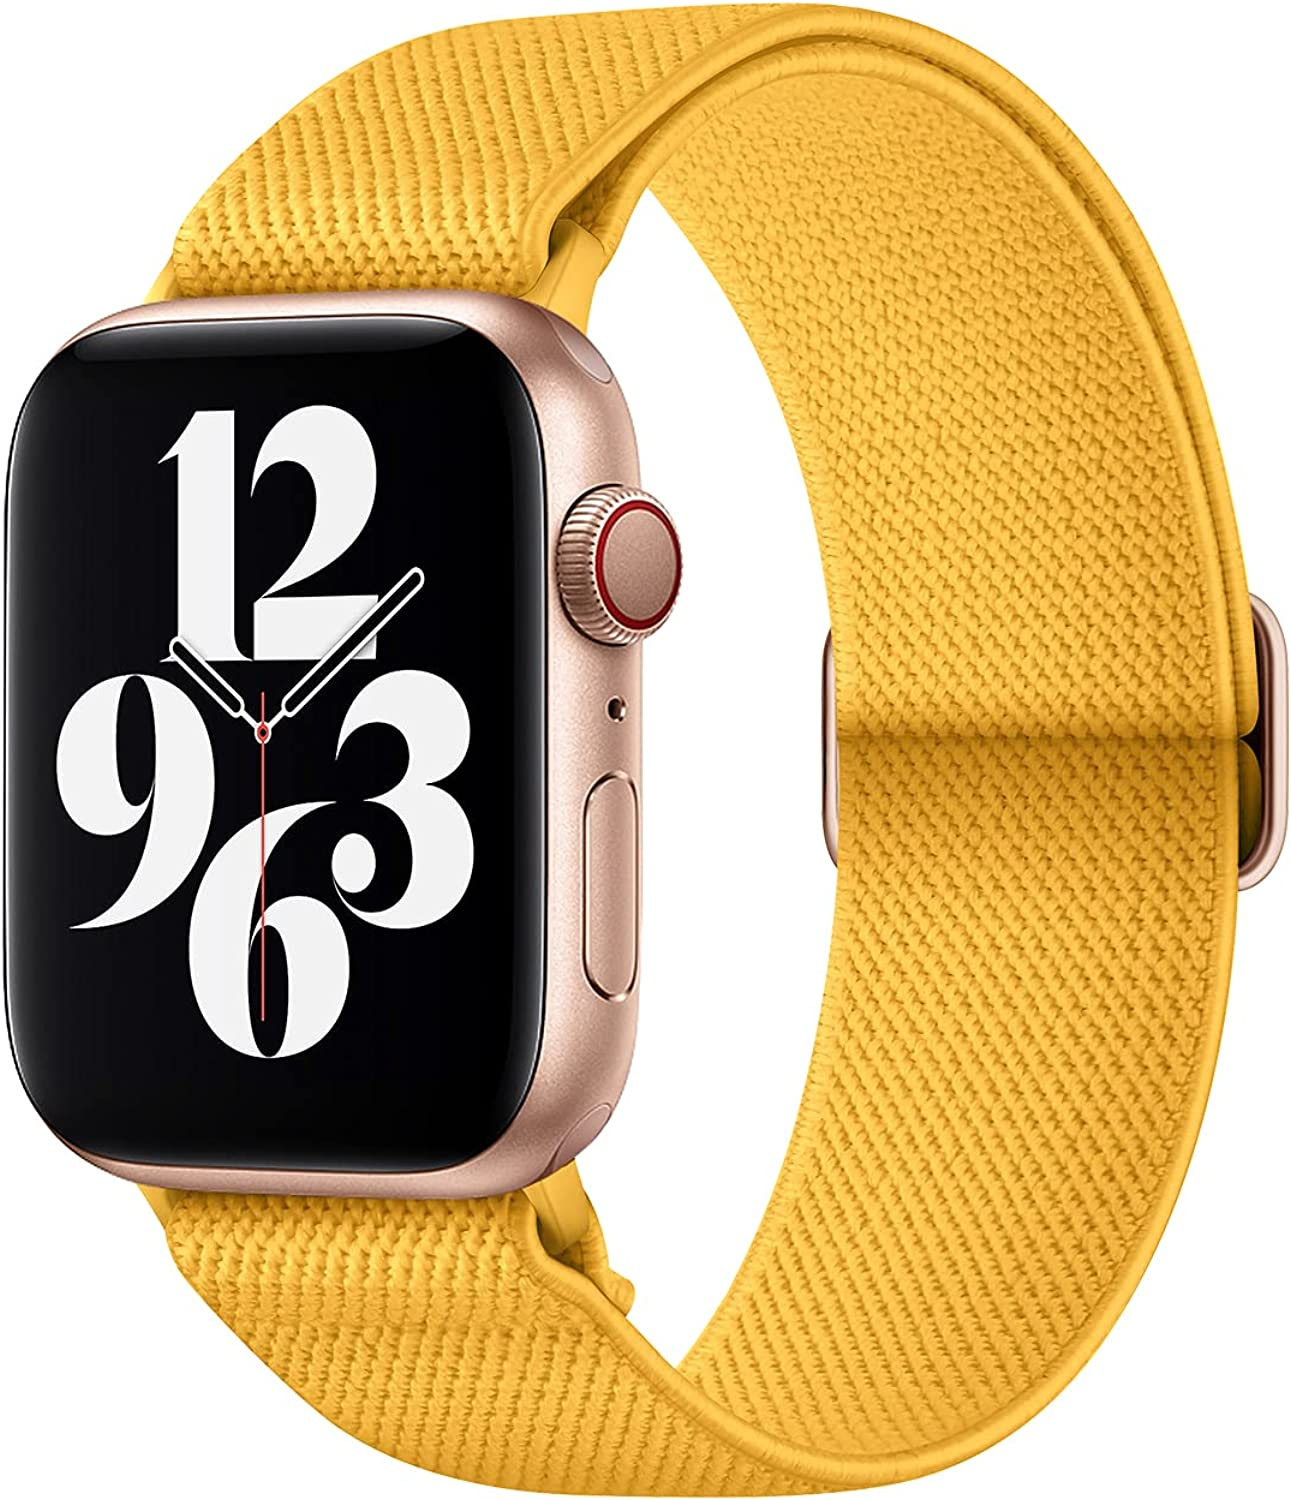 Updated 2021 – Top 10 Apple Watch Band 38Mm Yellow